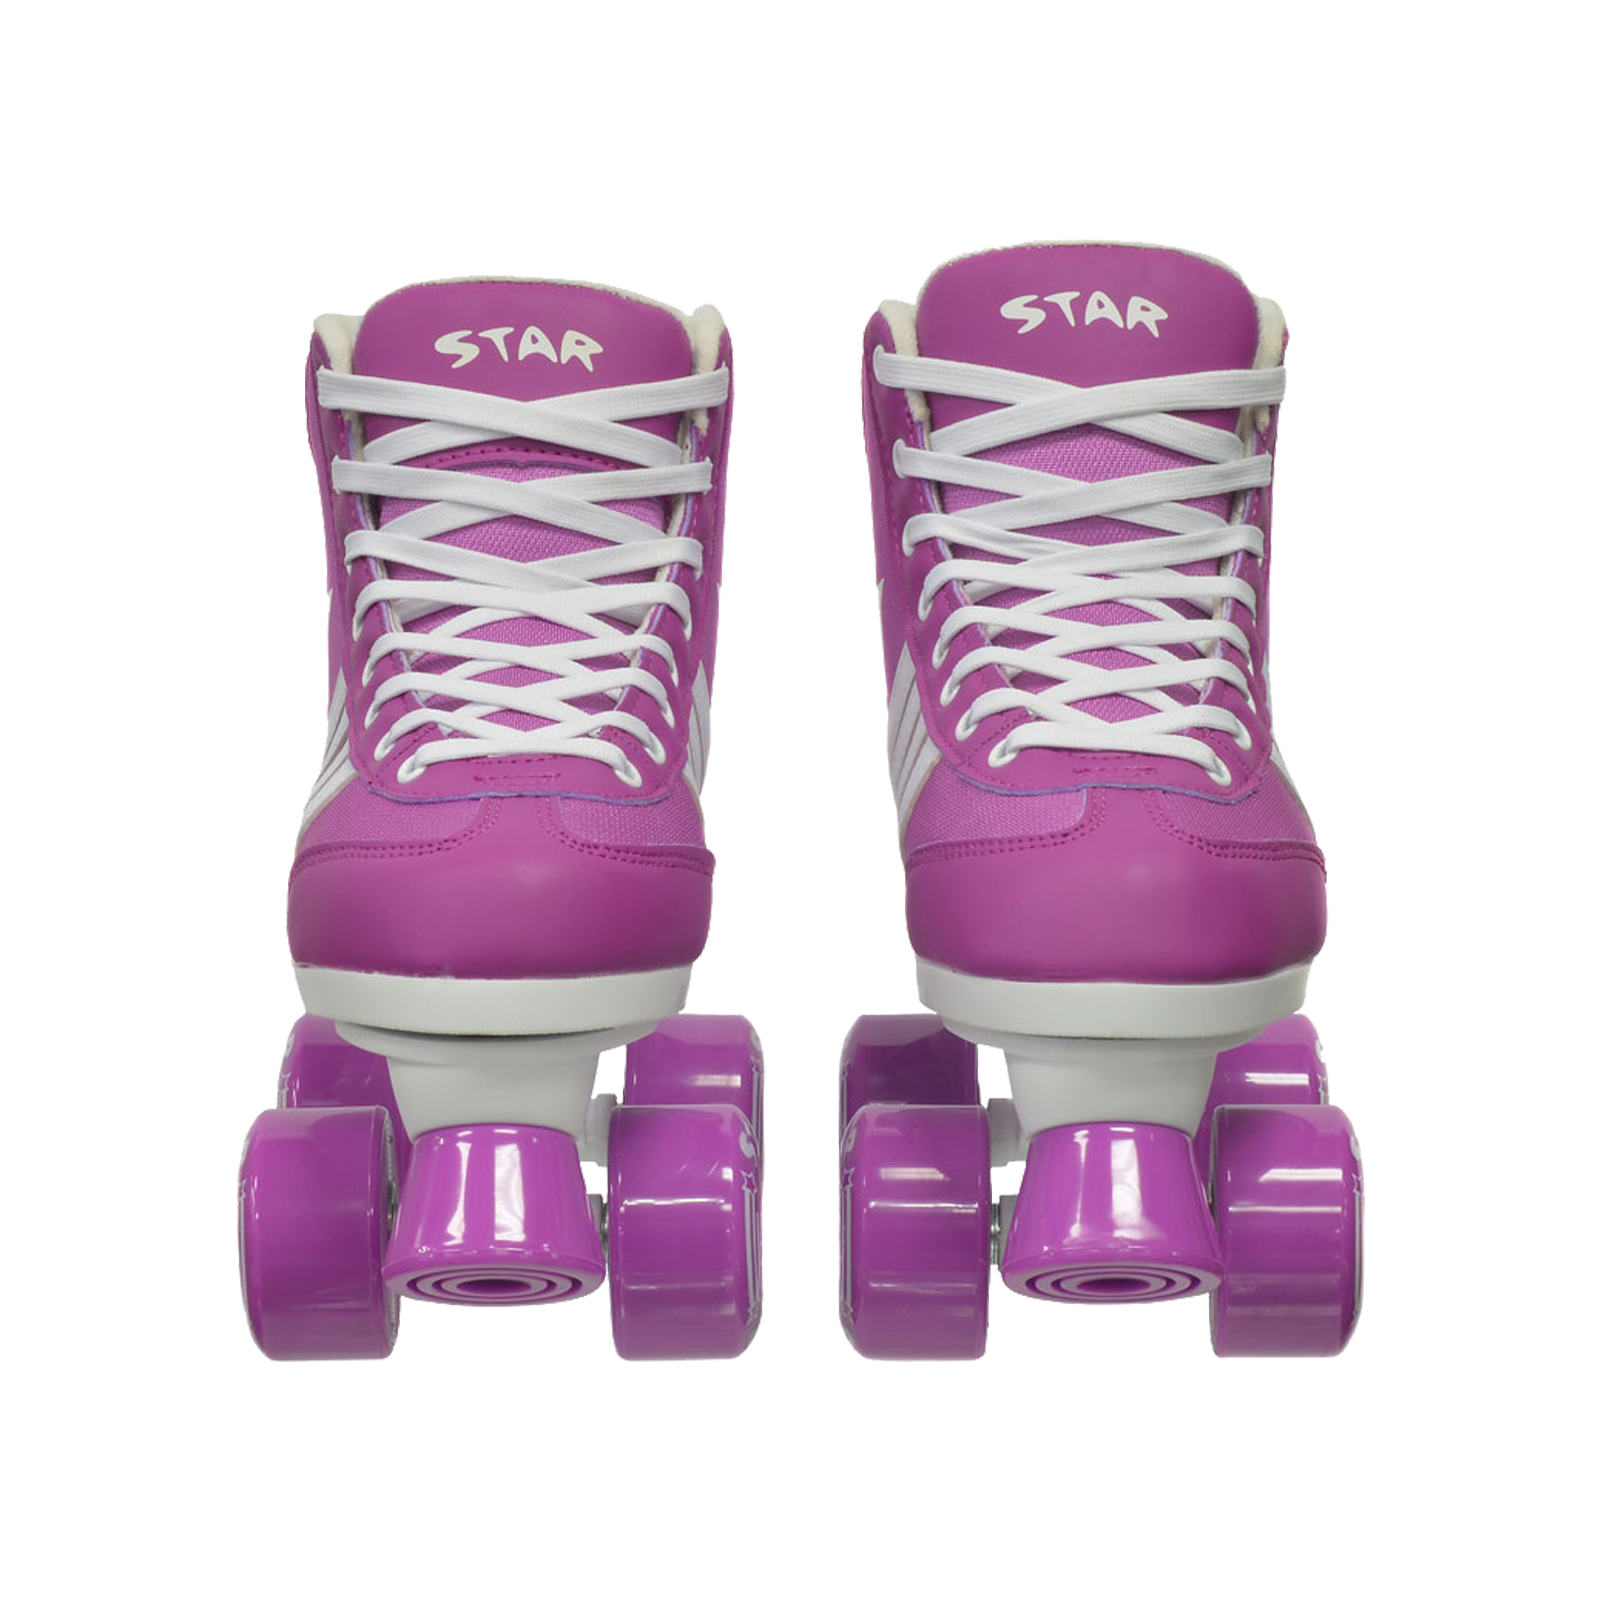 Epic Quad Star Pegasus Purple Roller Skates